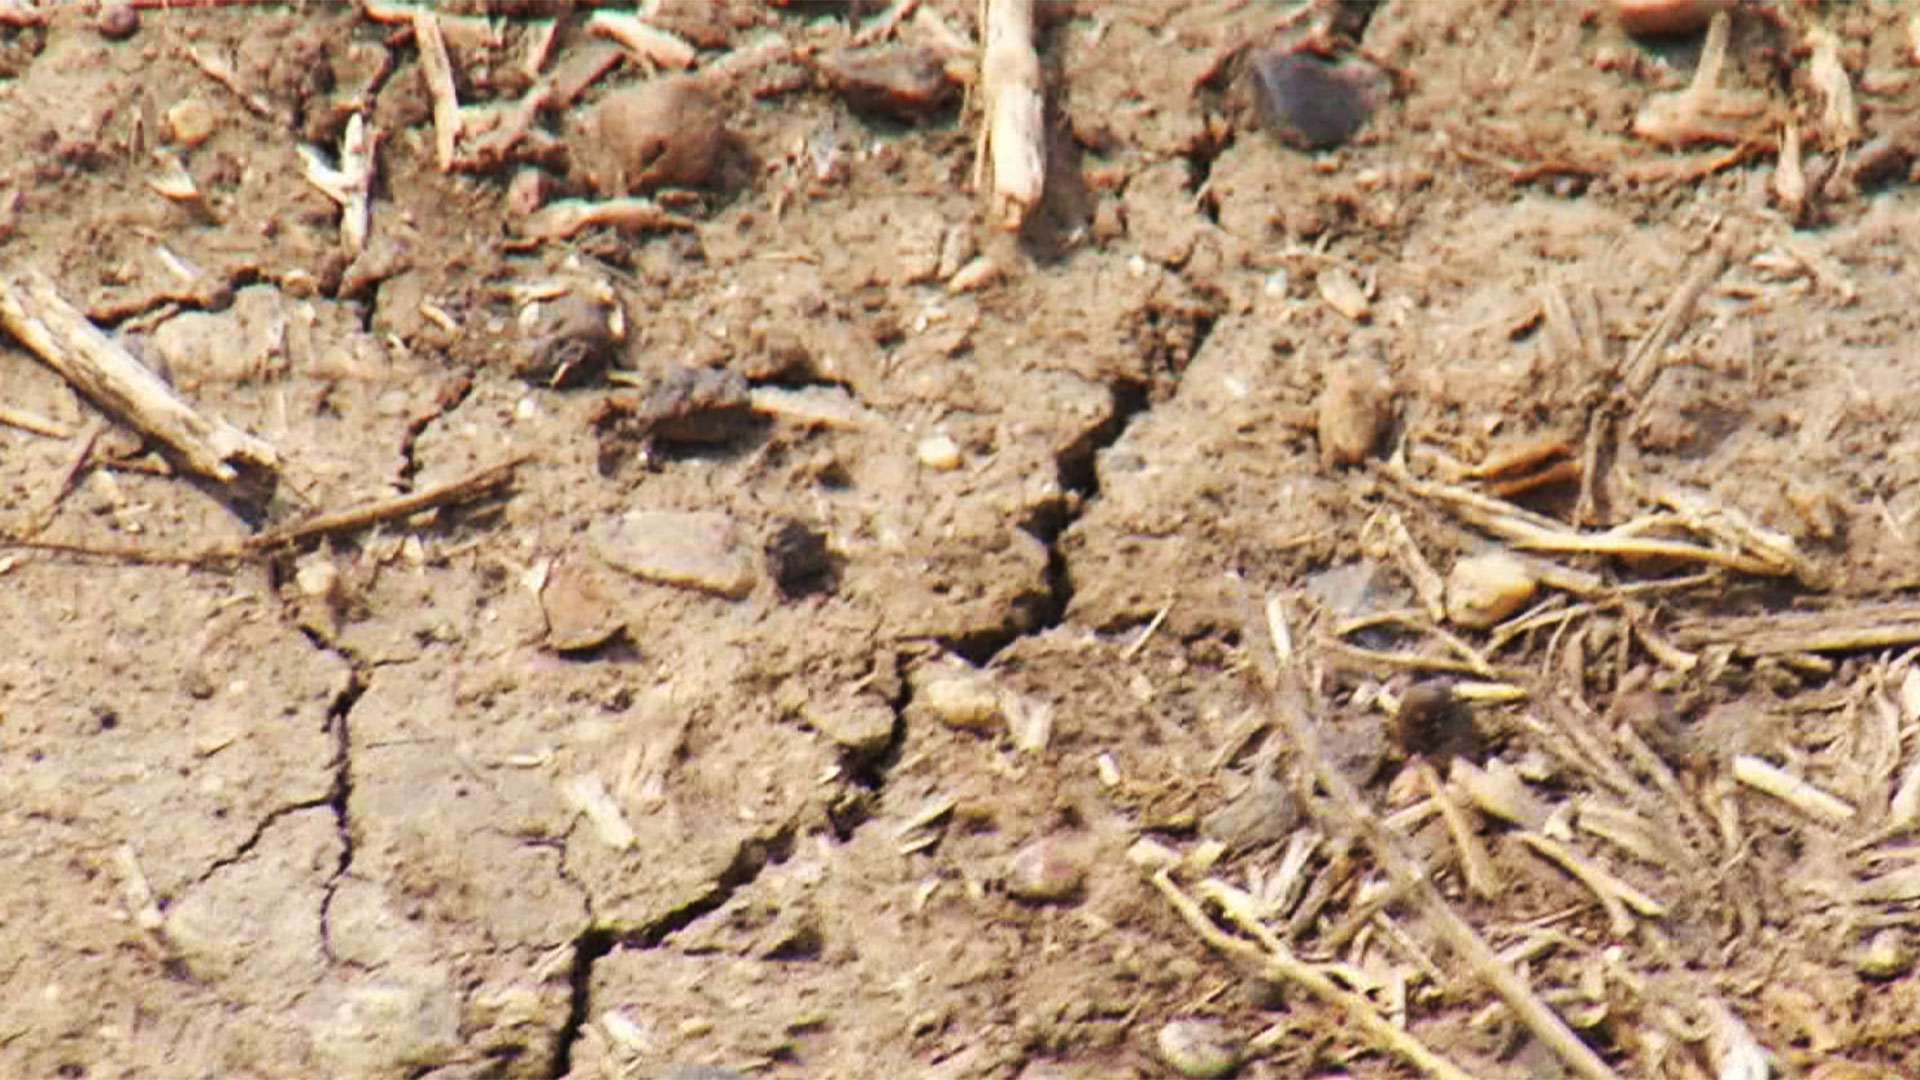 KELO South Dakota drought dry conditions dirt